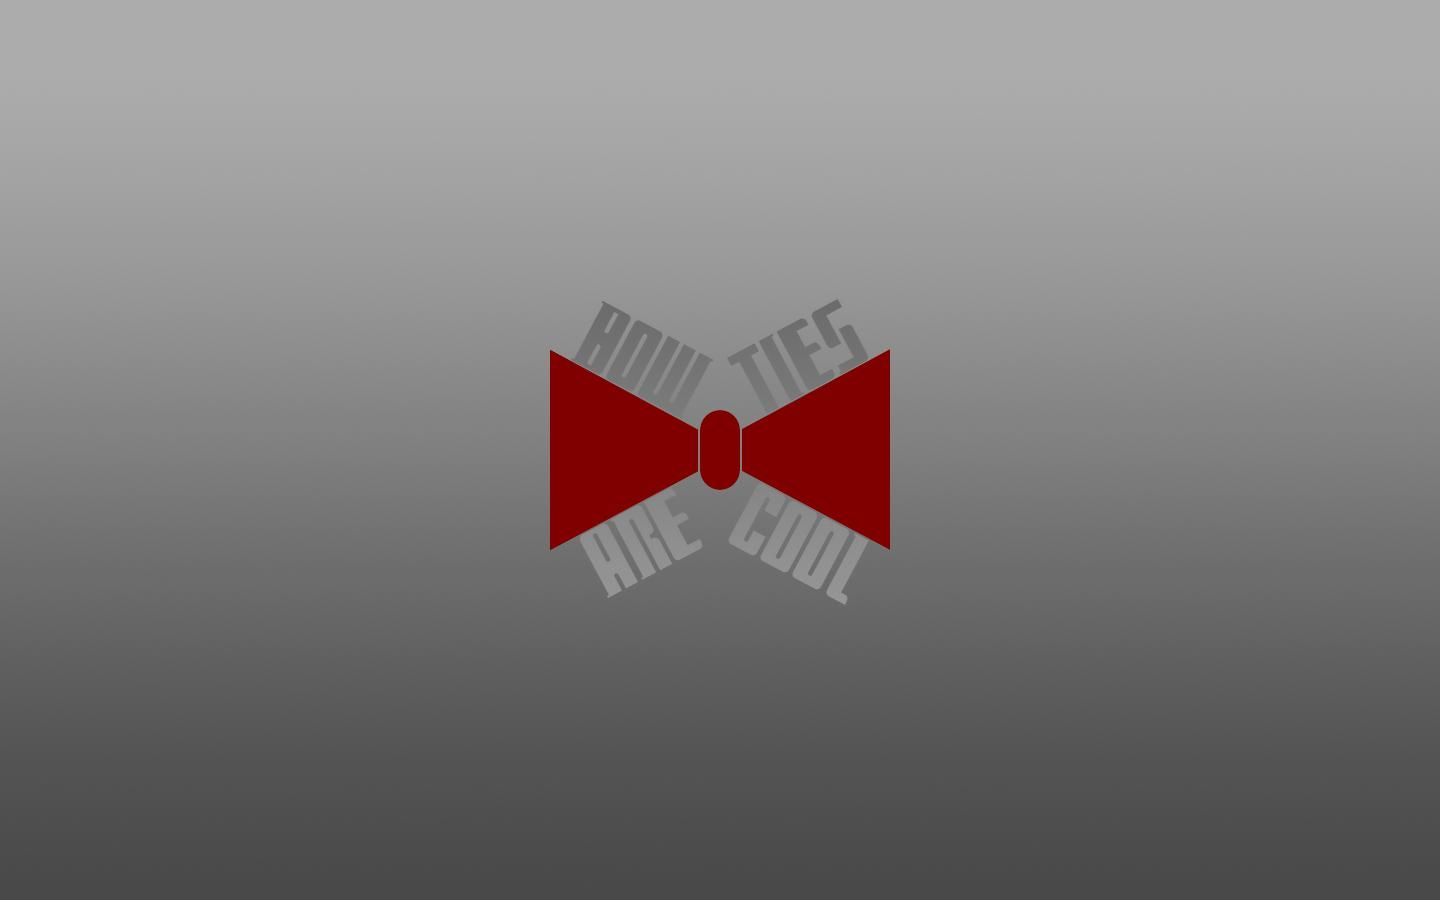 1440x900 Bowtie wallpapers are cool. - doctorwho